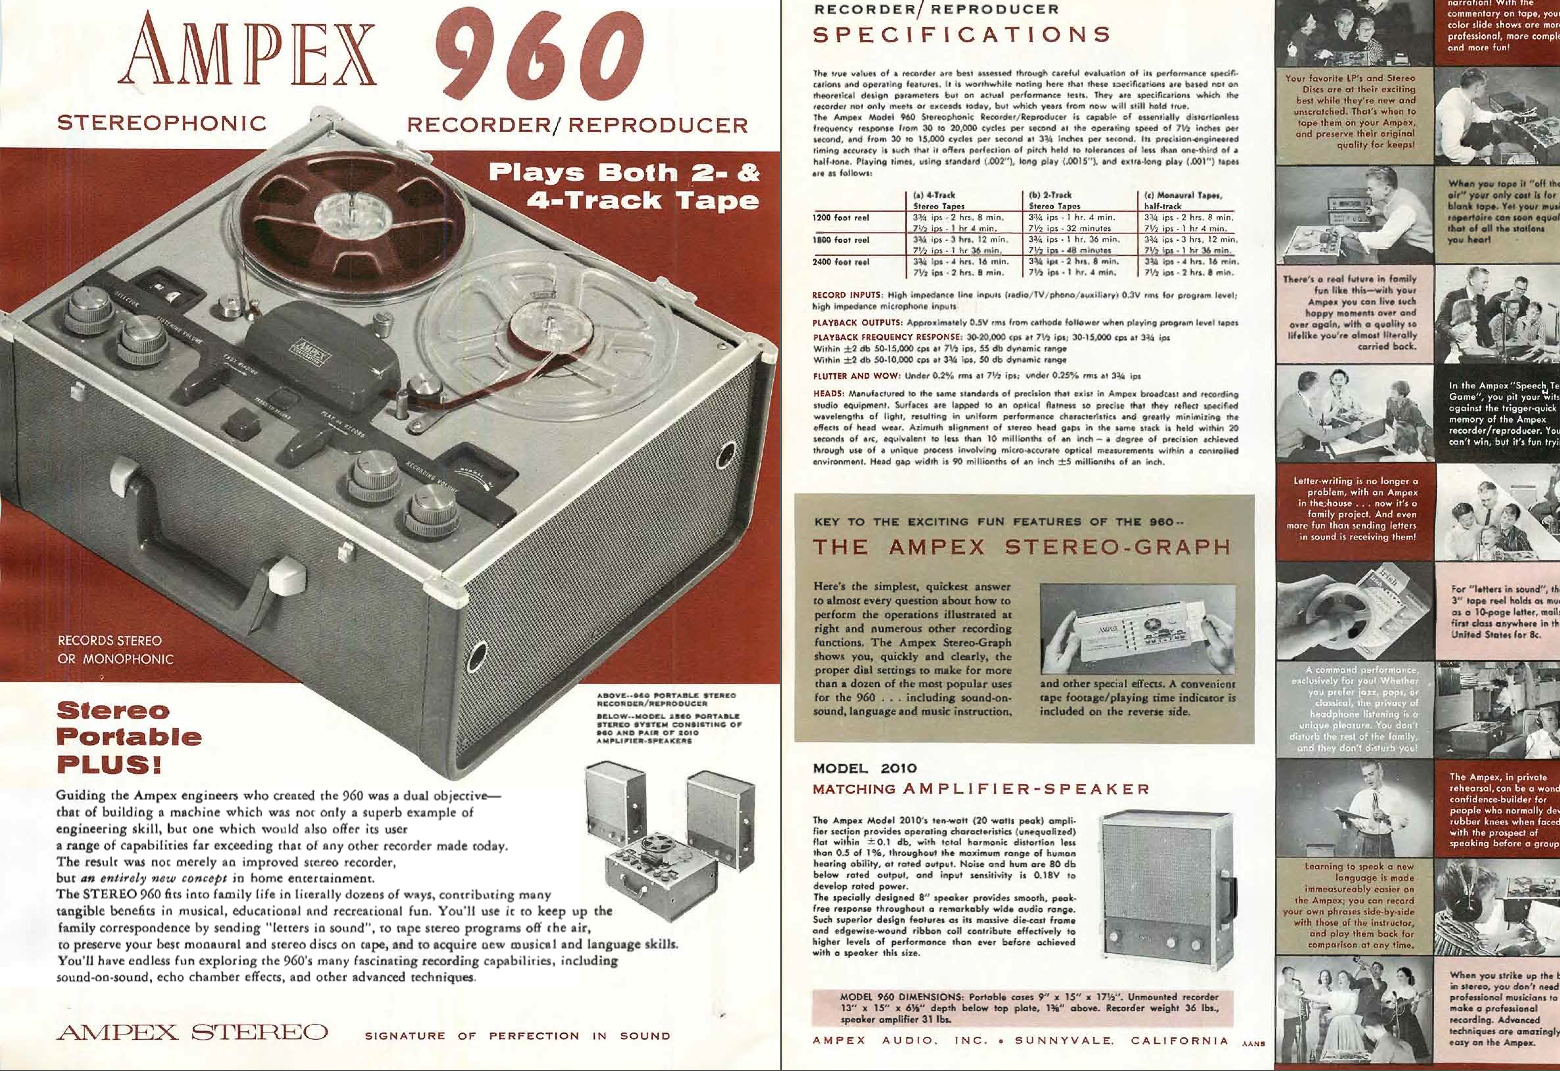 1959 Ad for Ampex 960 reel tape recorder in Reel2ReelTexas.com vintage tape recorder collection